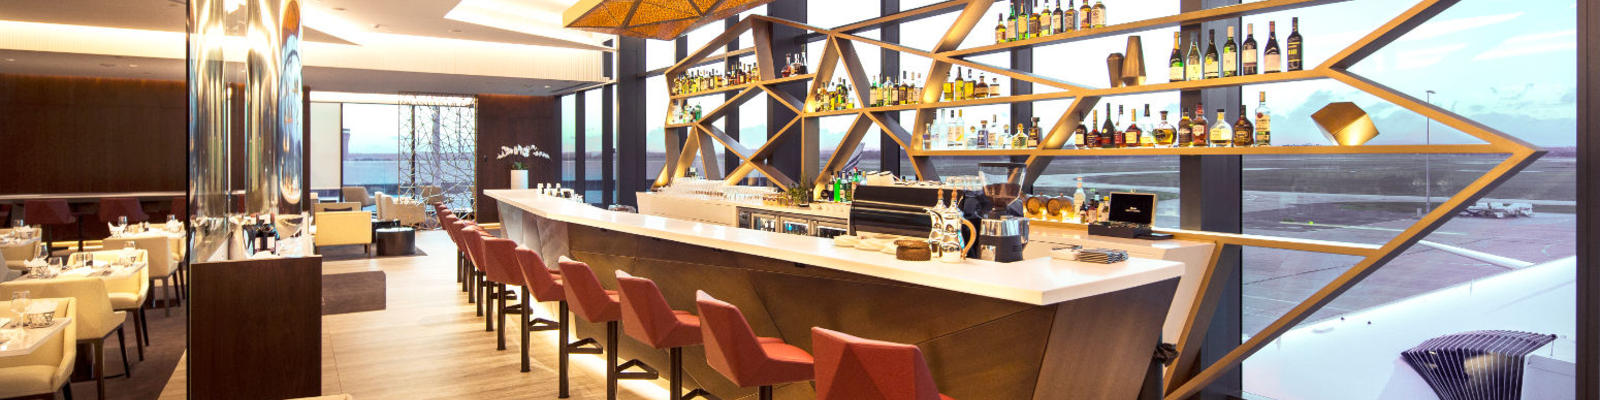 A view of the new Etihad lounge bar in Melbourne Airport, overlooking the runway beyond